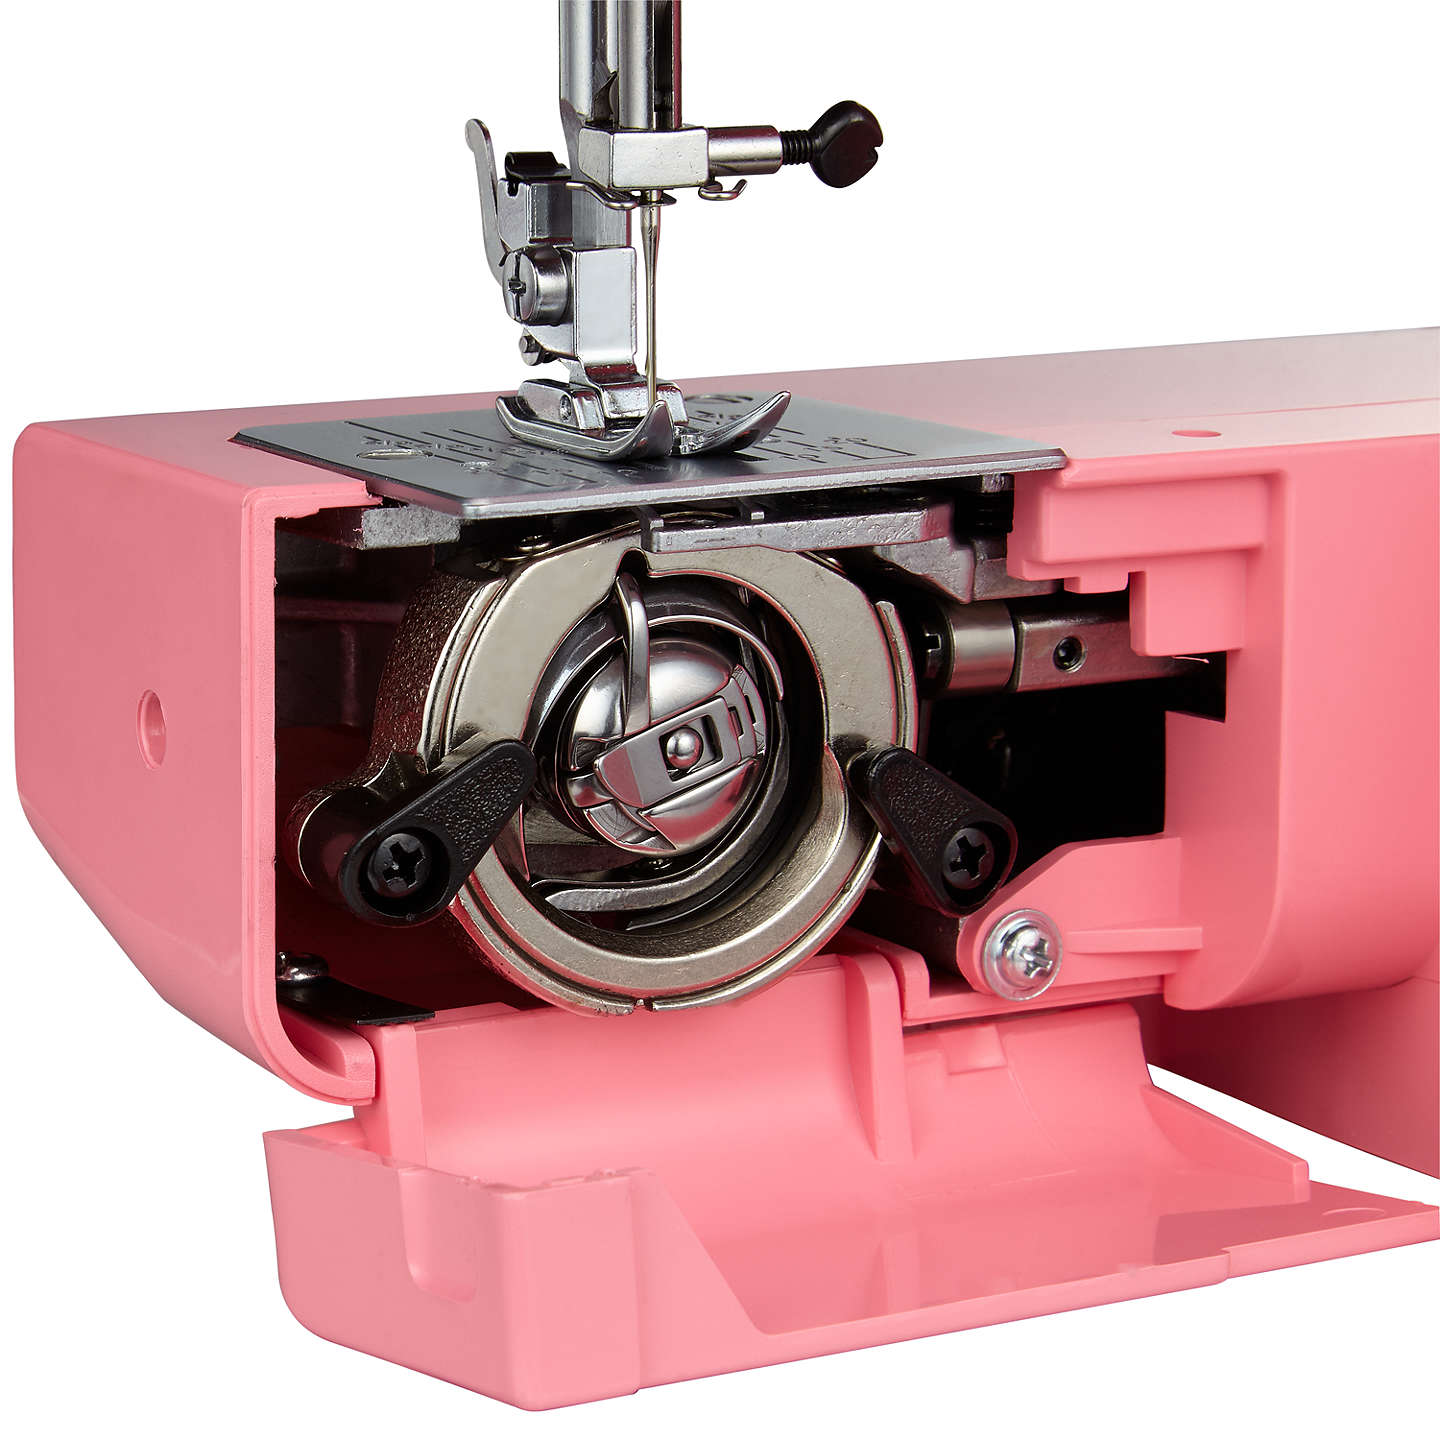 BuyJohn Lewis JL110 Sewing Machine, Pink Online at johnlewis.com